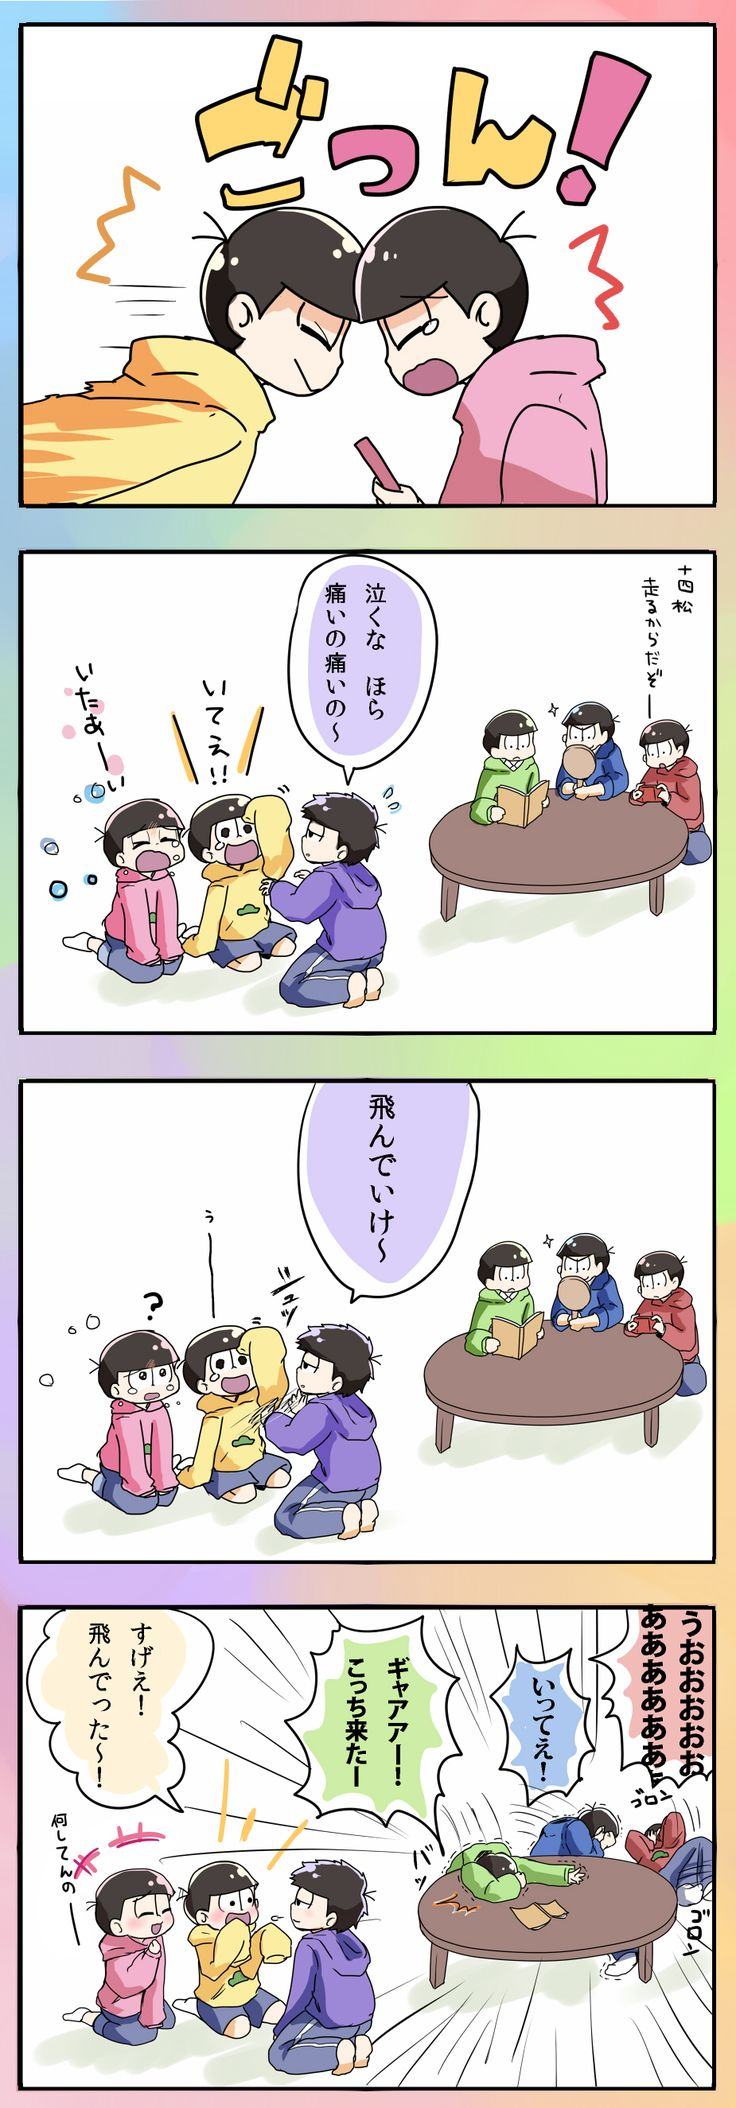 Osomatsu-san/ adorable, just adorable